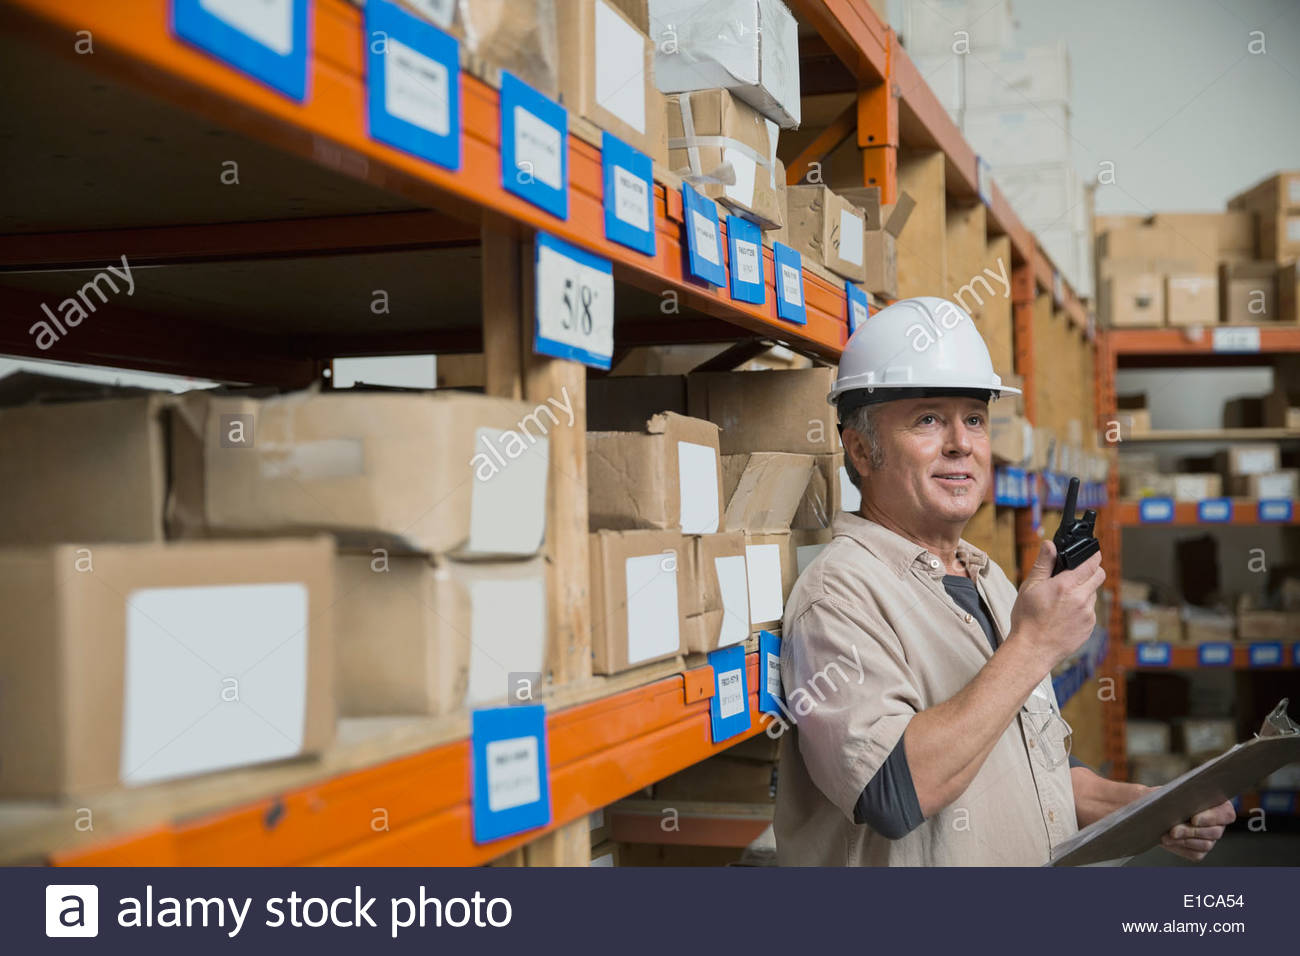 Worker with walkie-talkie in warehouse - Stock Image